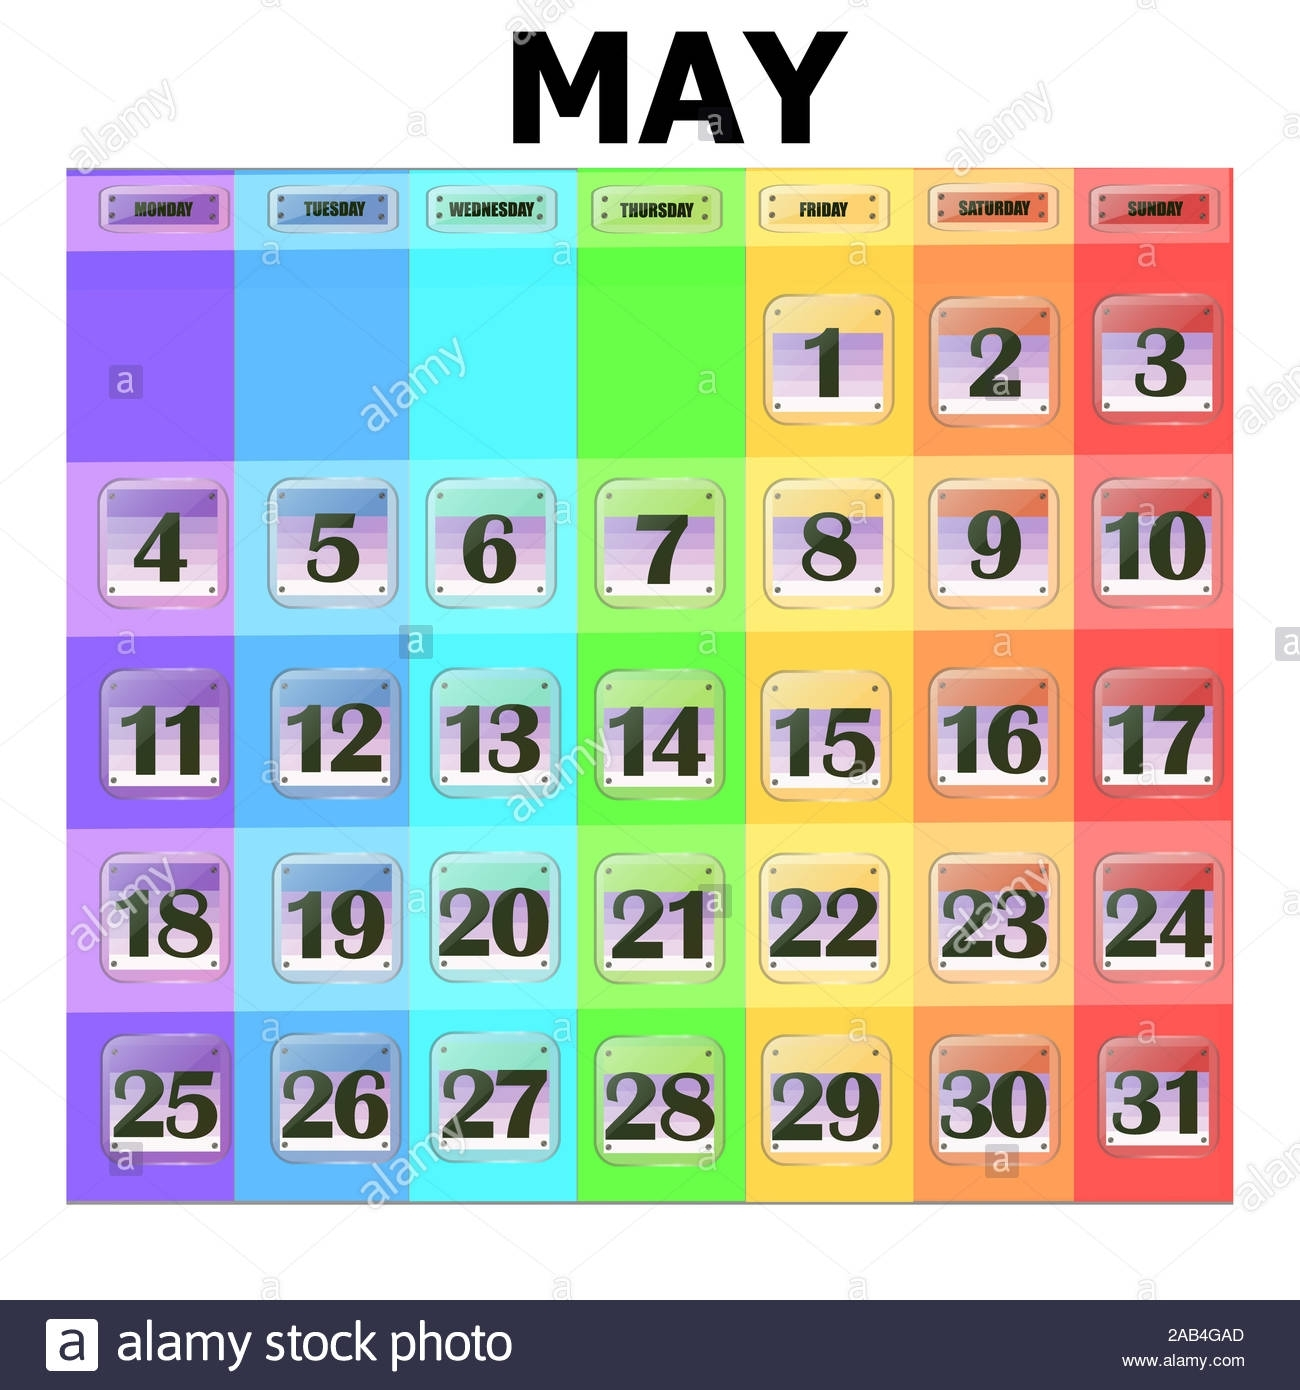 Colorful Calendar For May 2020 In English. Set Of Buttons intended for What Are Special Days In 2020